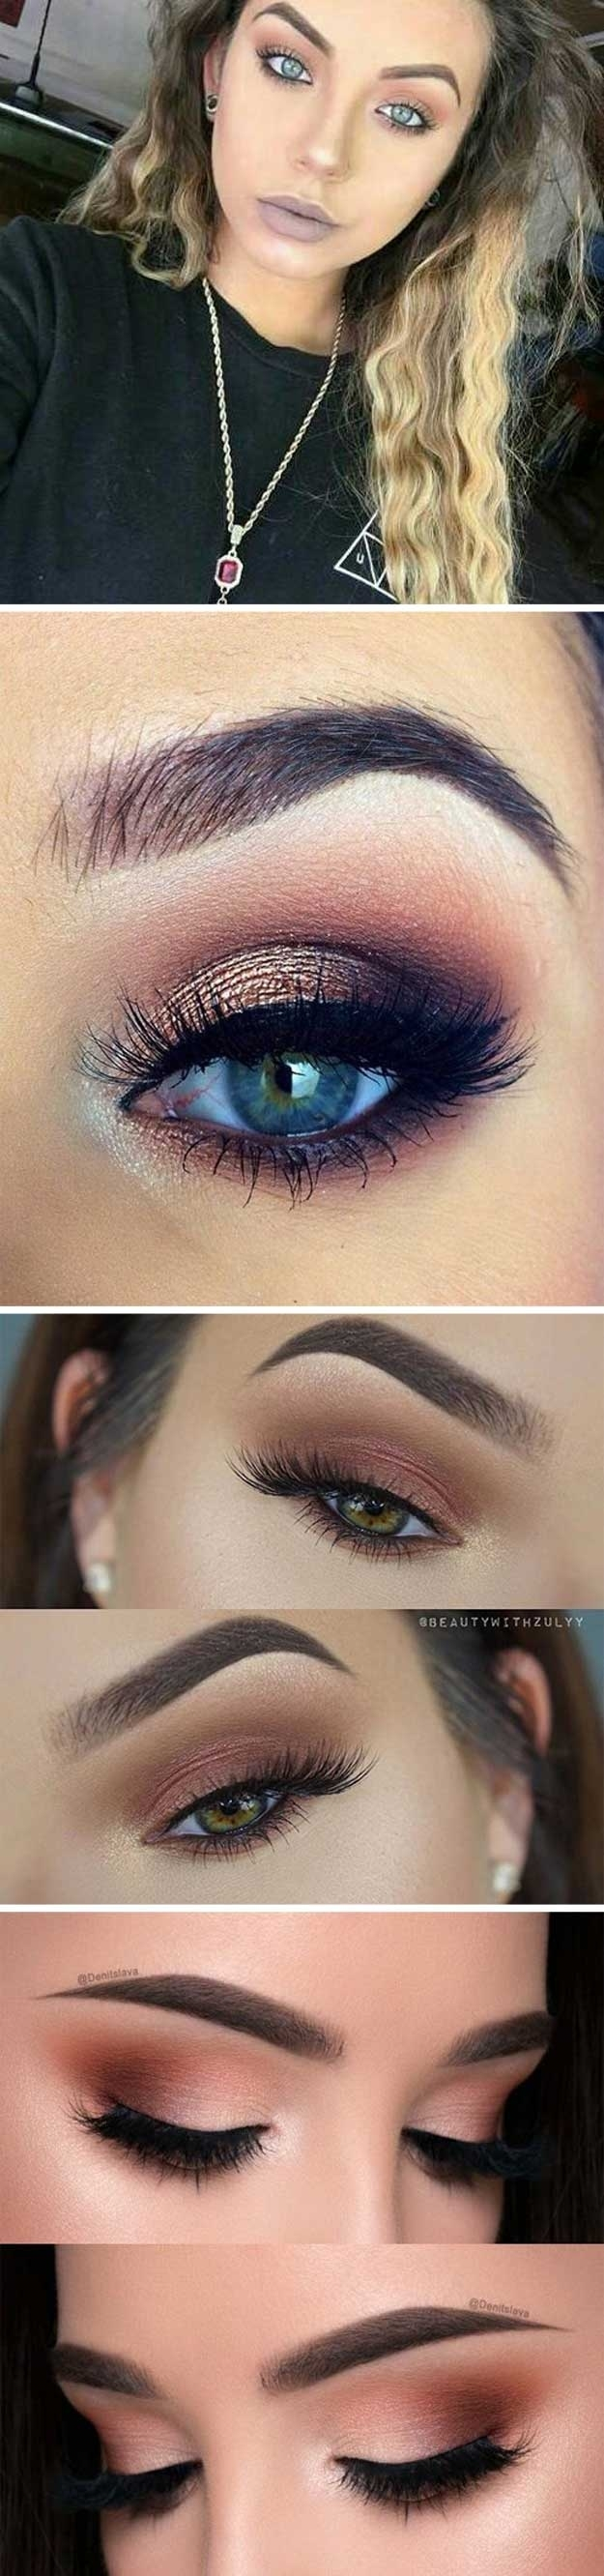 best eyeshadow color for blue eyes and brown hair - wavy haircut